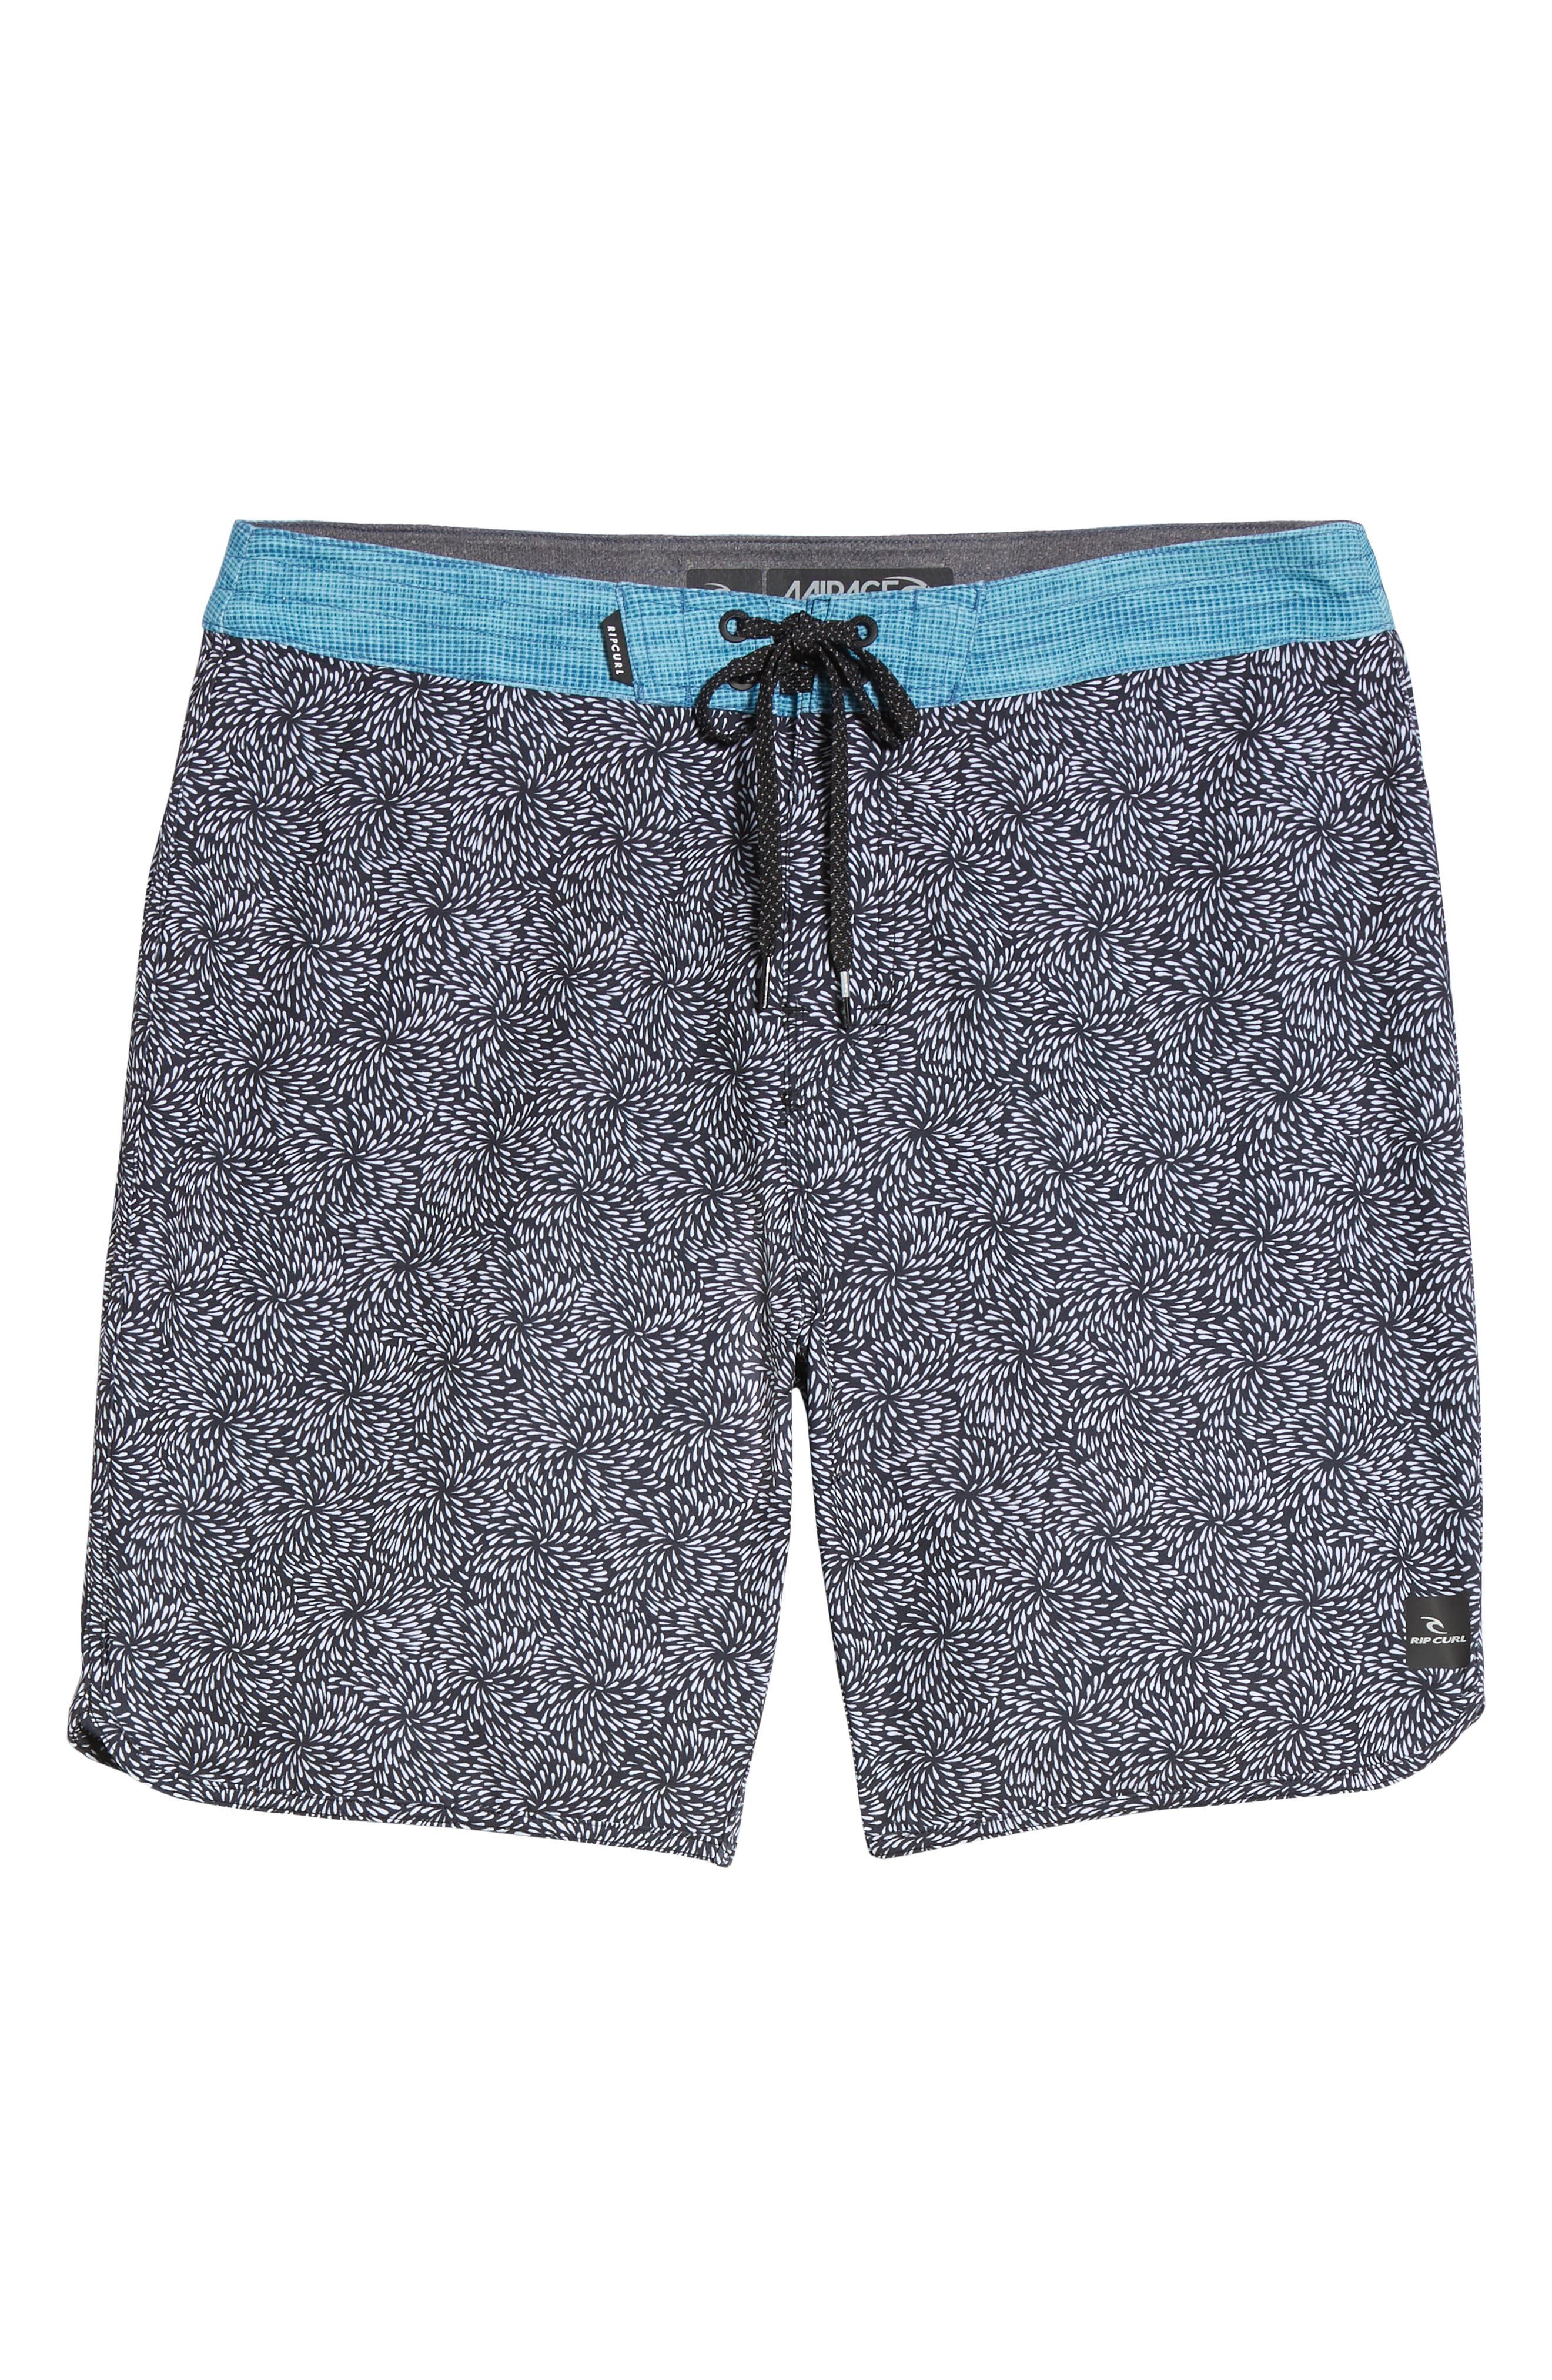 Mirage Conner Spin Out Board Shorts,                             Alternate thumbnail 12, color,